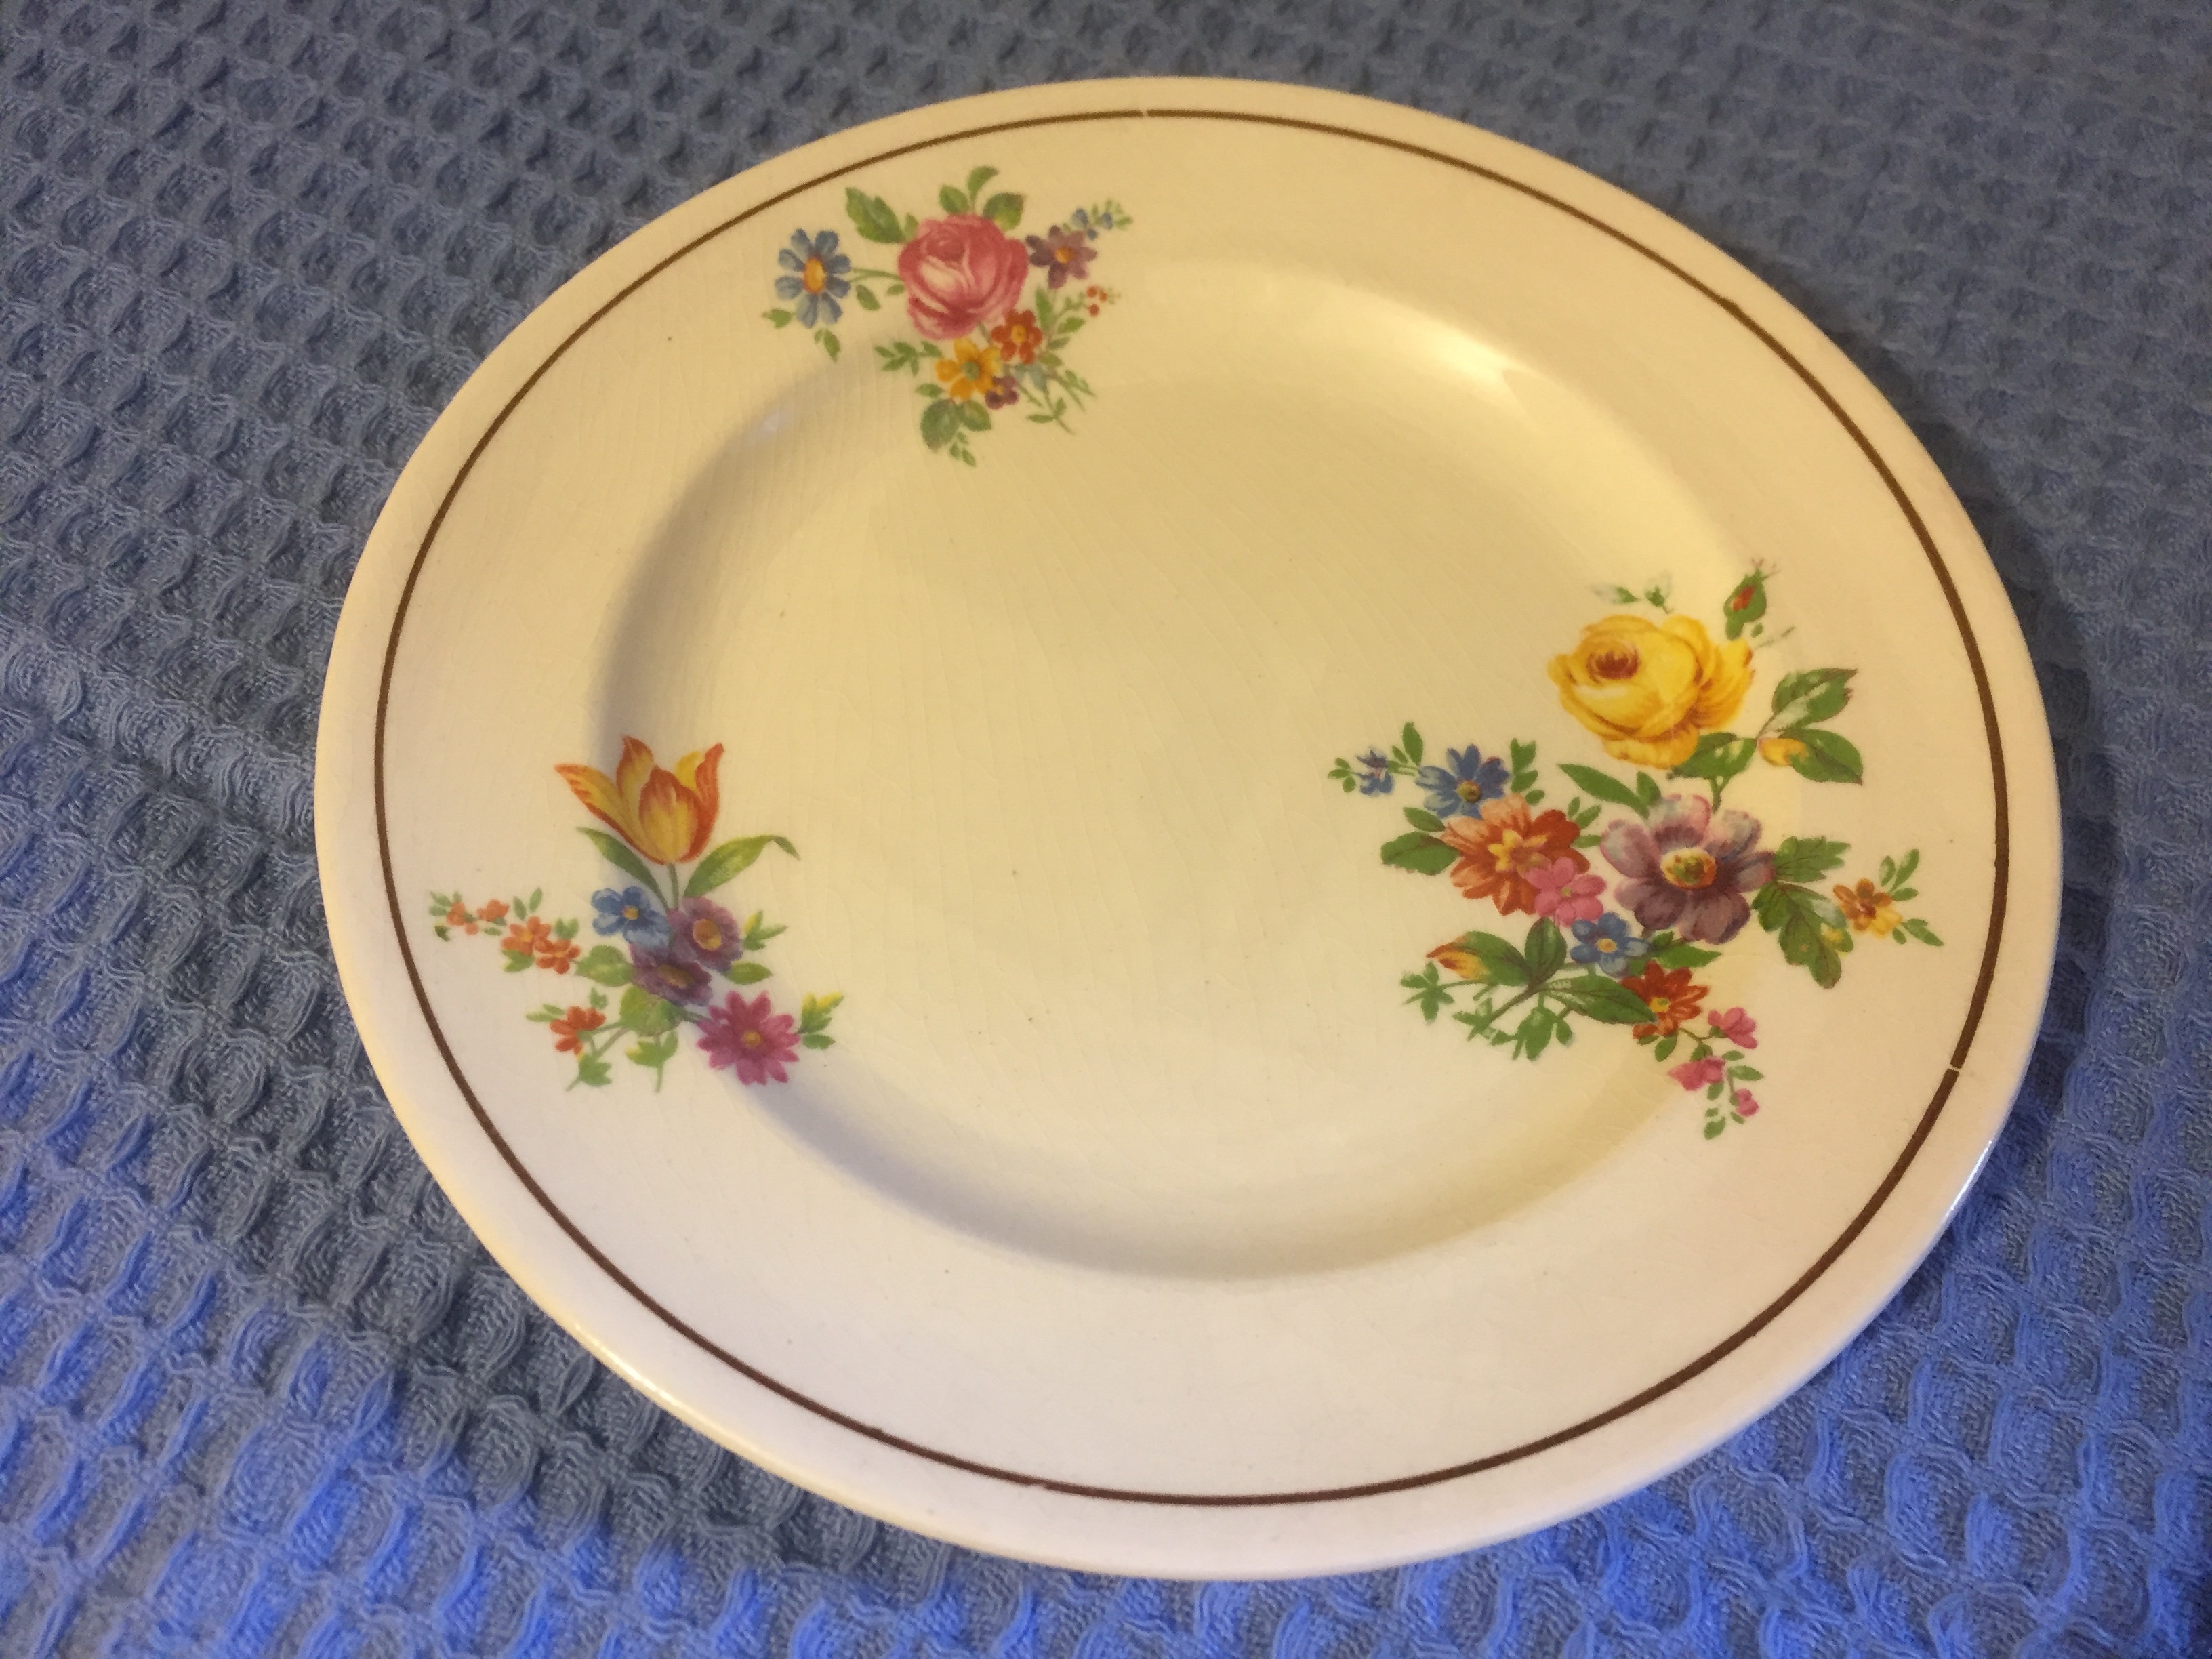 ORIGINAL DESIGN DINING SIDE PLATE FROM THE DONALDSON LINE